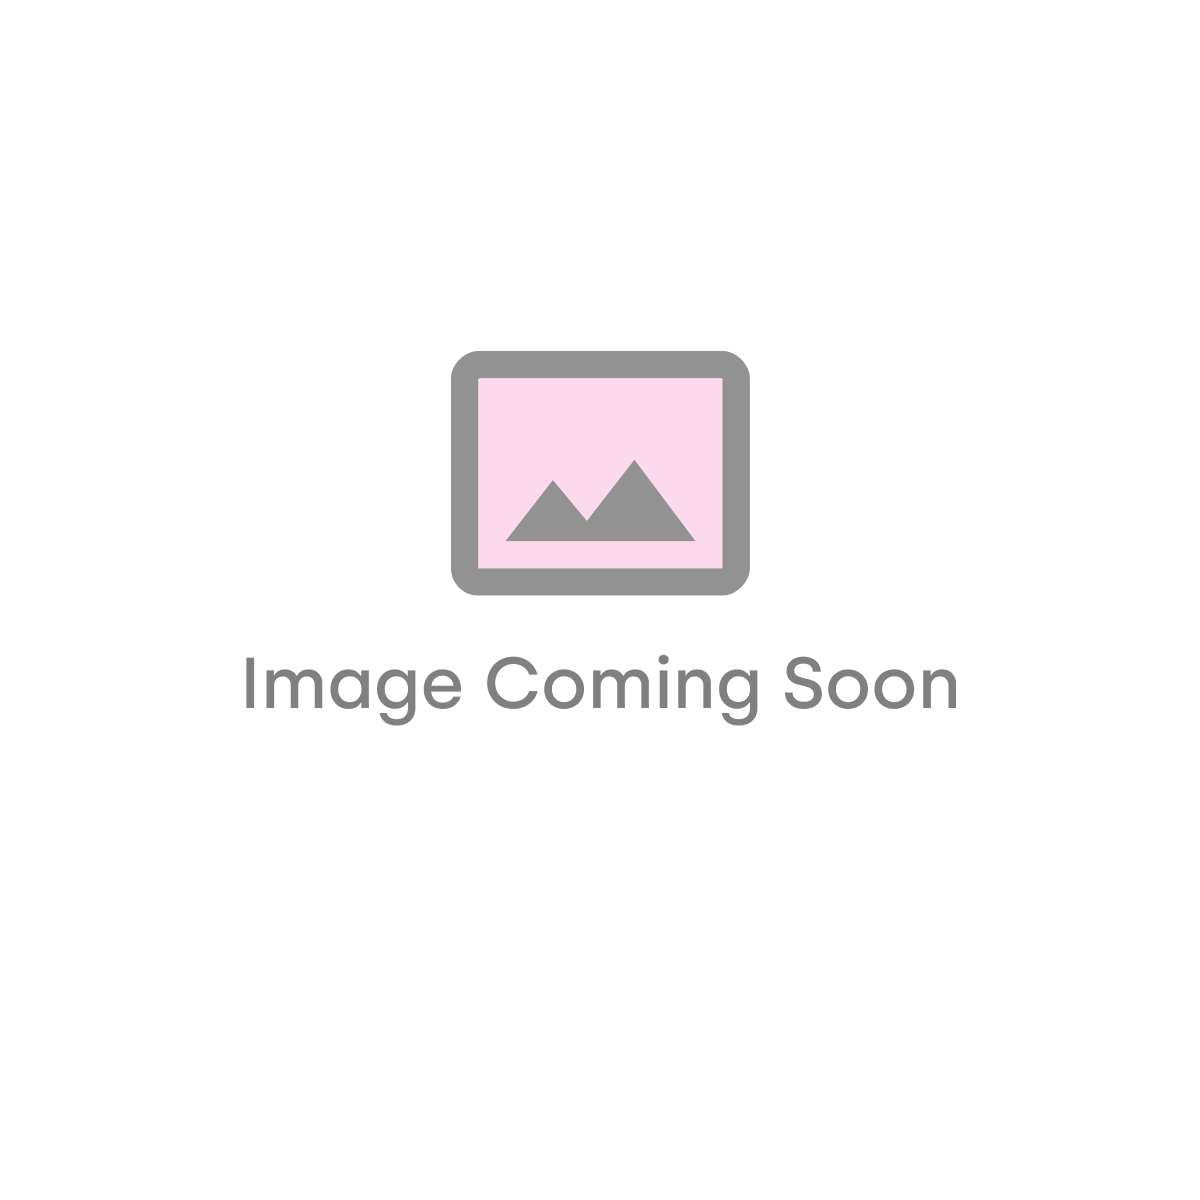 Aquadart 10mm Wetroom Profile Pack - Black (18686)